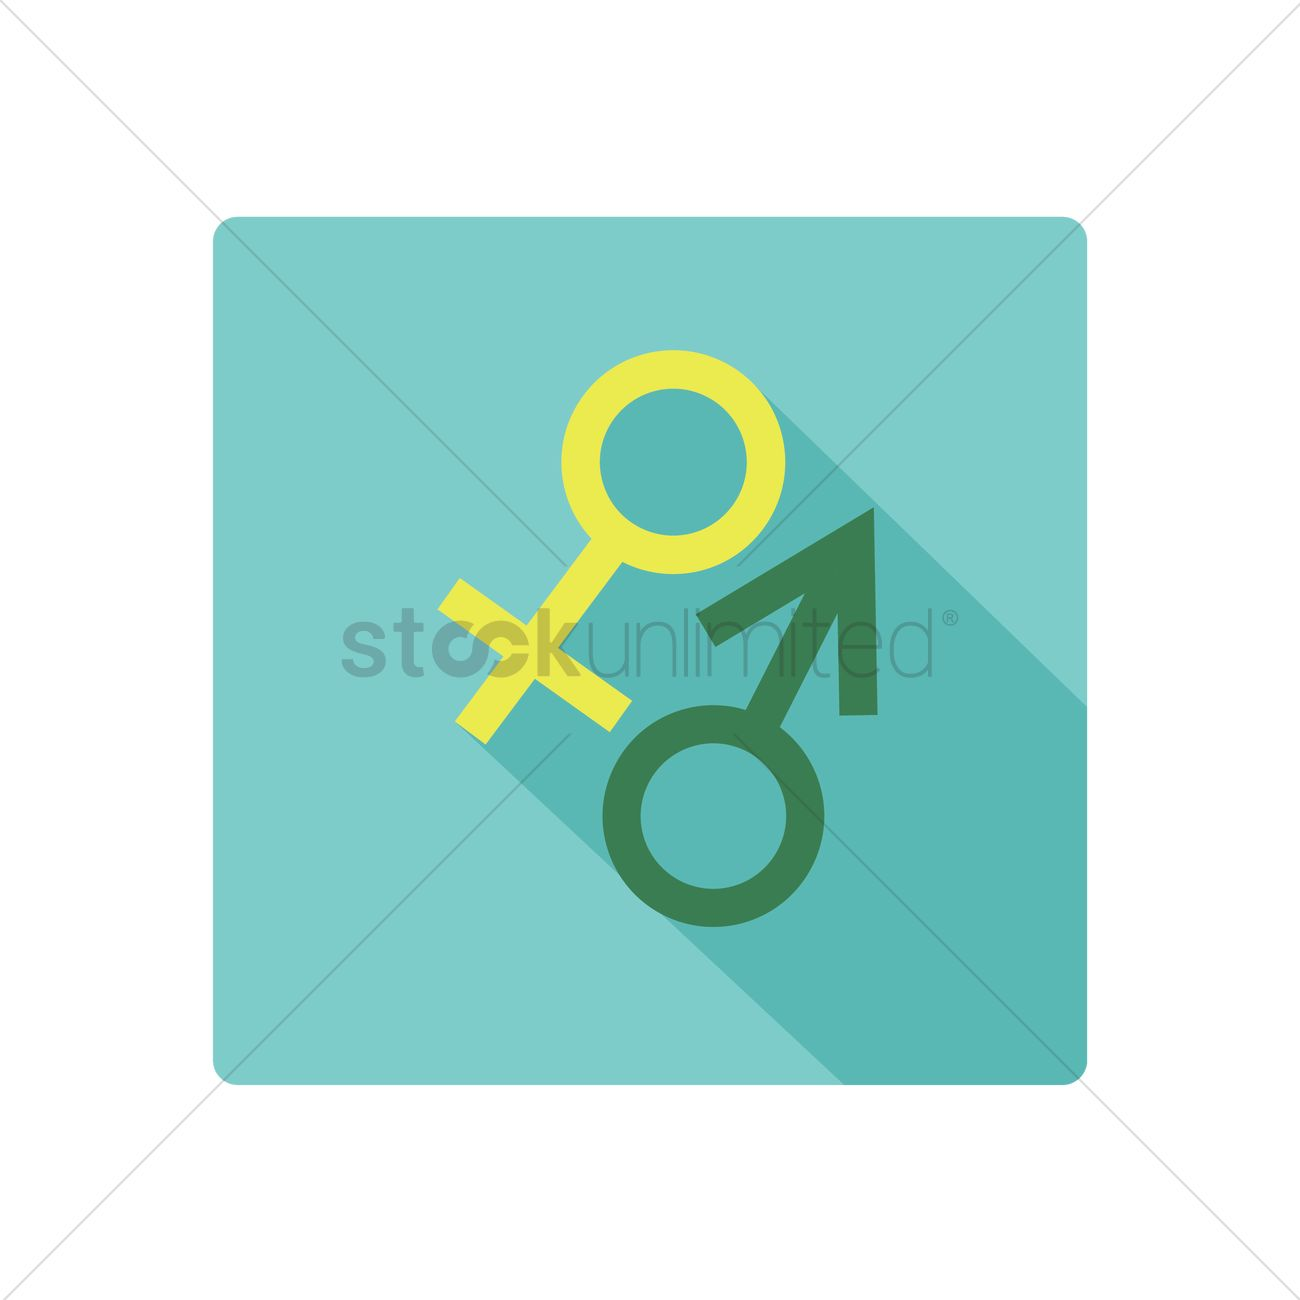 Male And Female Symbols Vector Image 1375290 Stockunlimited